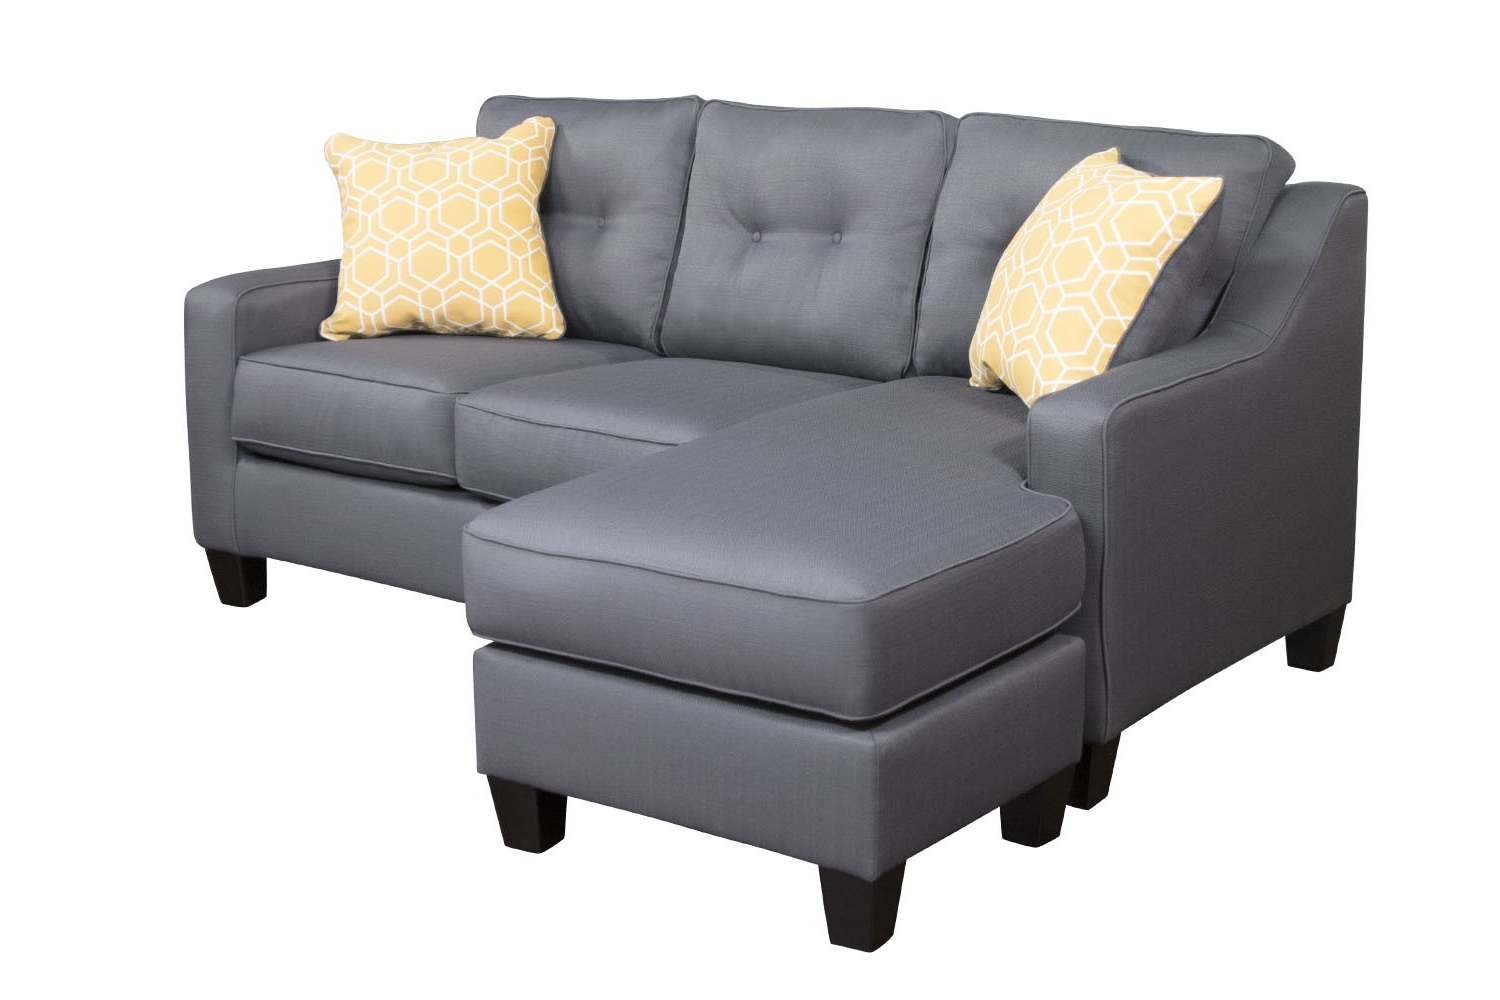 Aldie Gray Sofa Chaise (View 9 of 15)